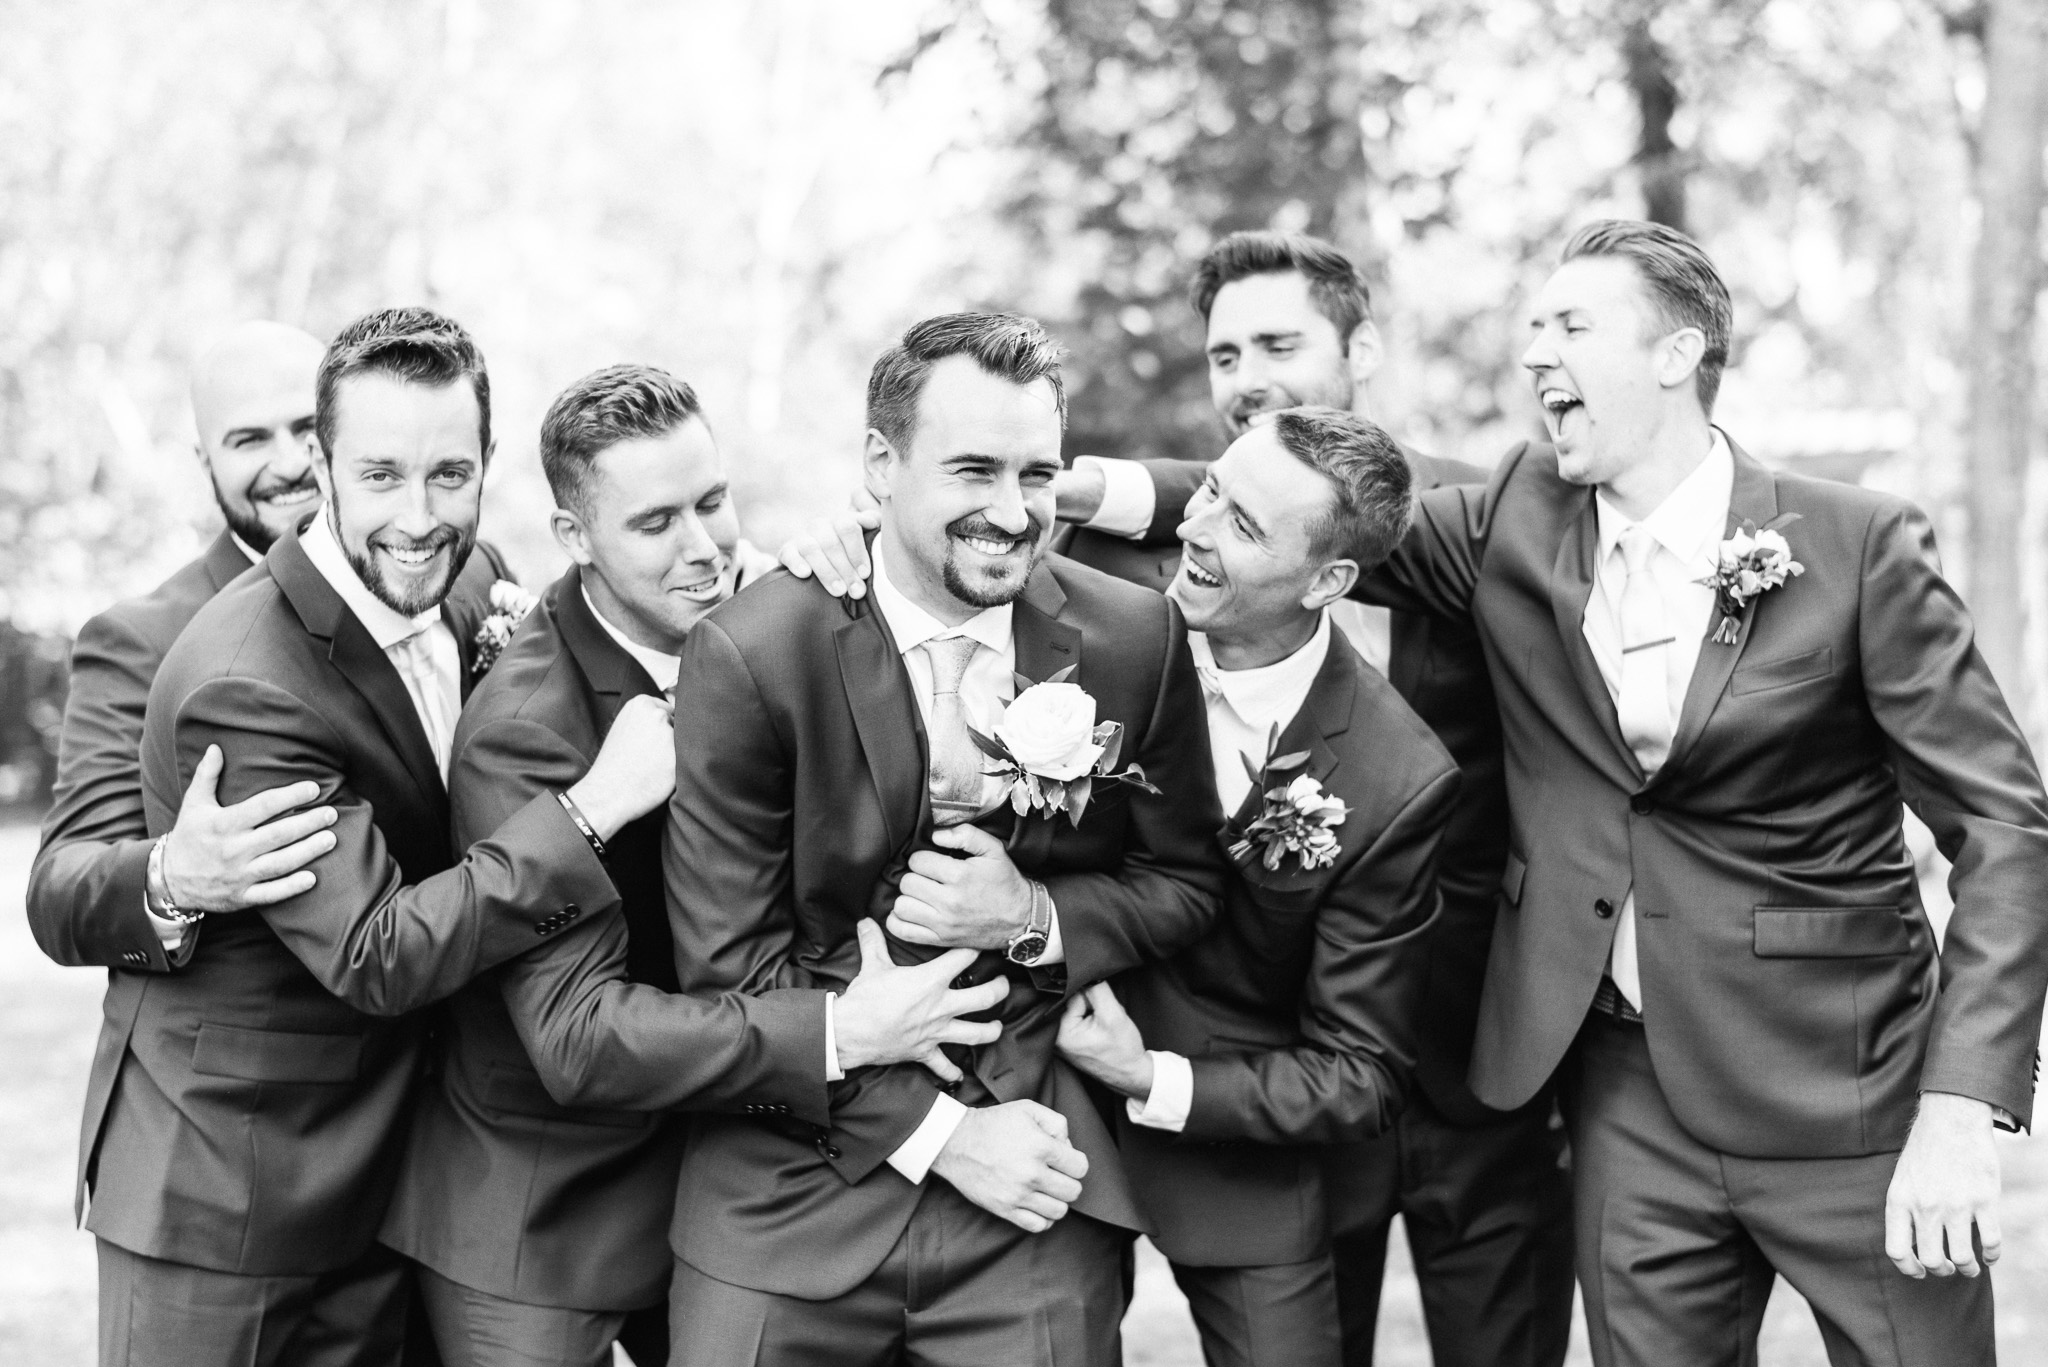 Blue groomsmen suits by Jenn Kavanagh Photography